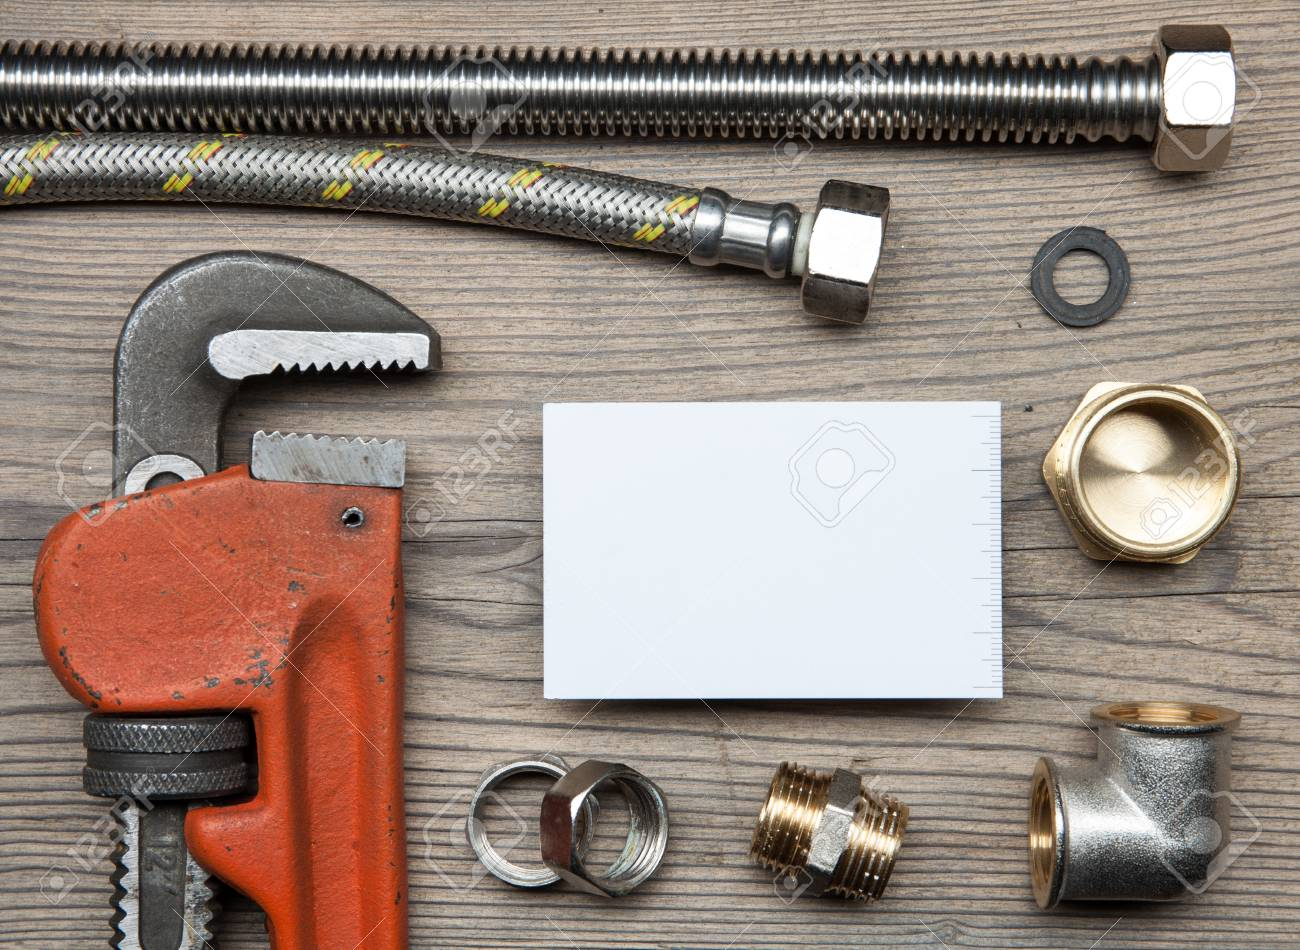 Set Of Pipes Plumbing Tools Fittings And Business Card On The